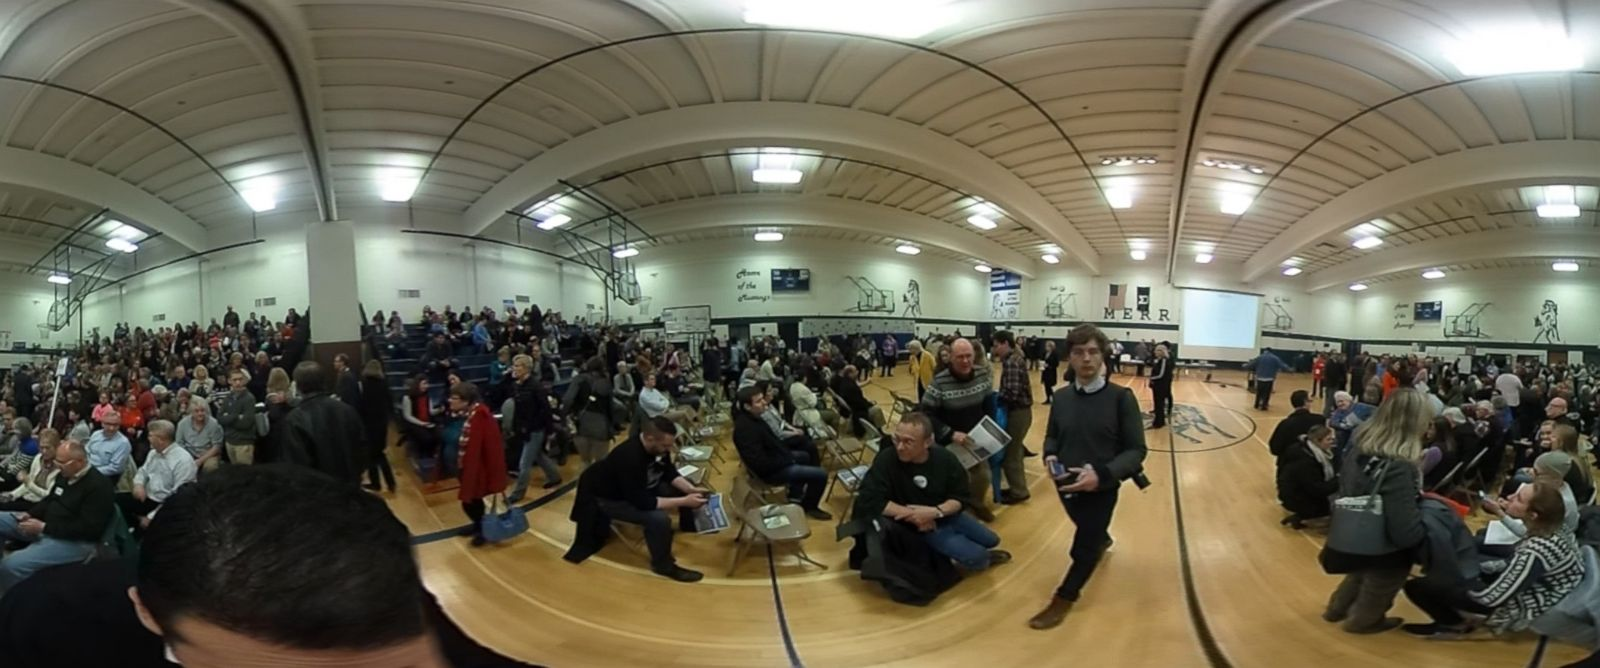 PHOTO: The scene inside an Iowa caucus location at Merrill Middle School in Des Moines.